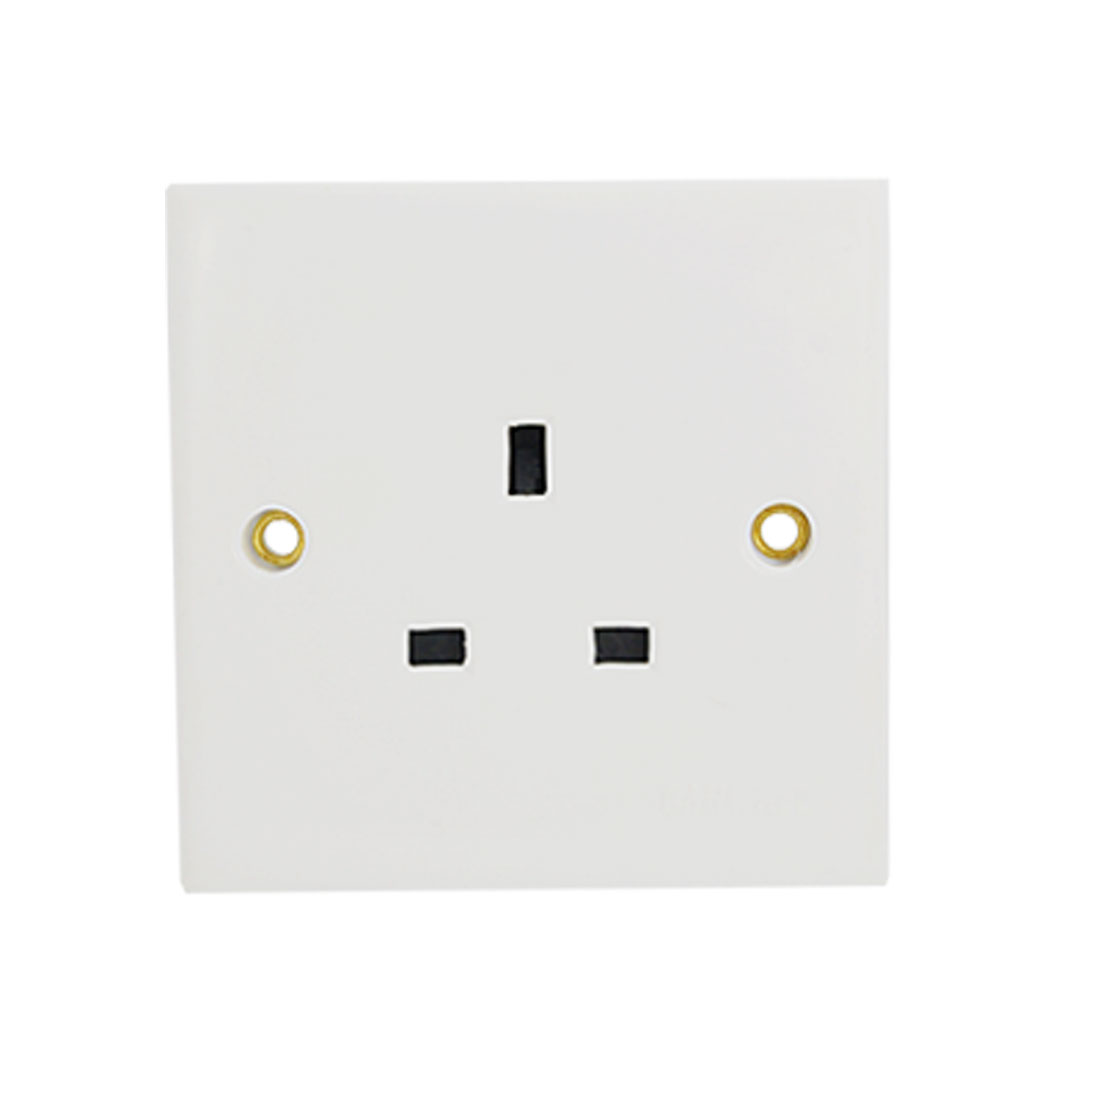 White Power Outlet Socket Wall Plate Panel for 3 Pin UK Plug